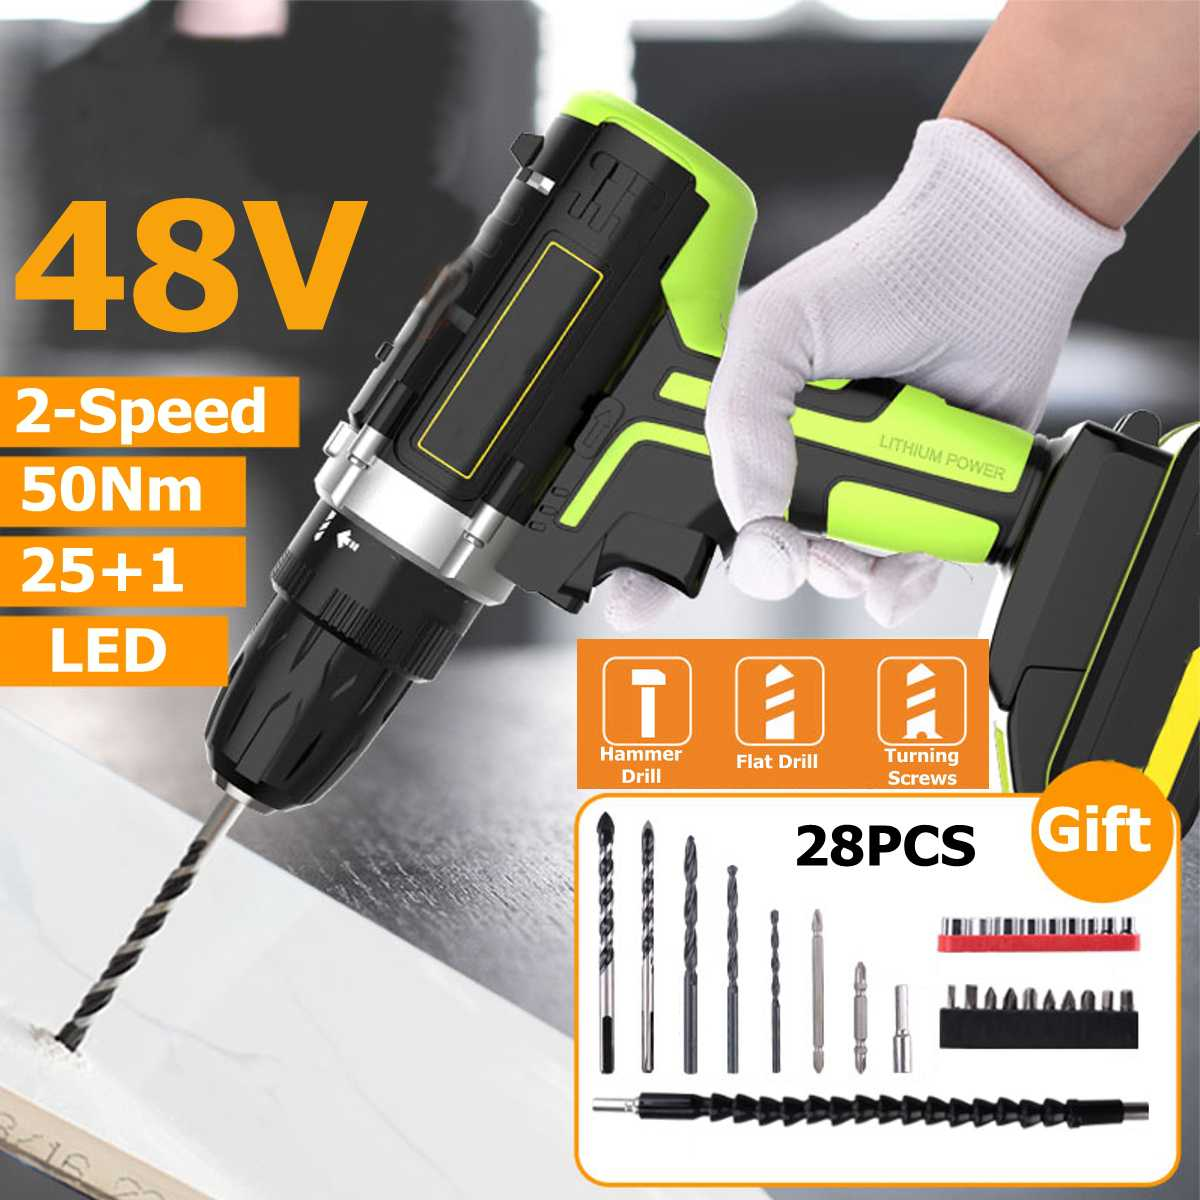 Professional 48v Cordless Drill Daul-speed Adjustment Led Lighting Large Capacity Battery 50nm 25+1 Torque 28pcs Accessories Tools